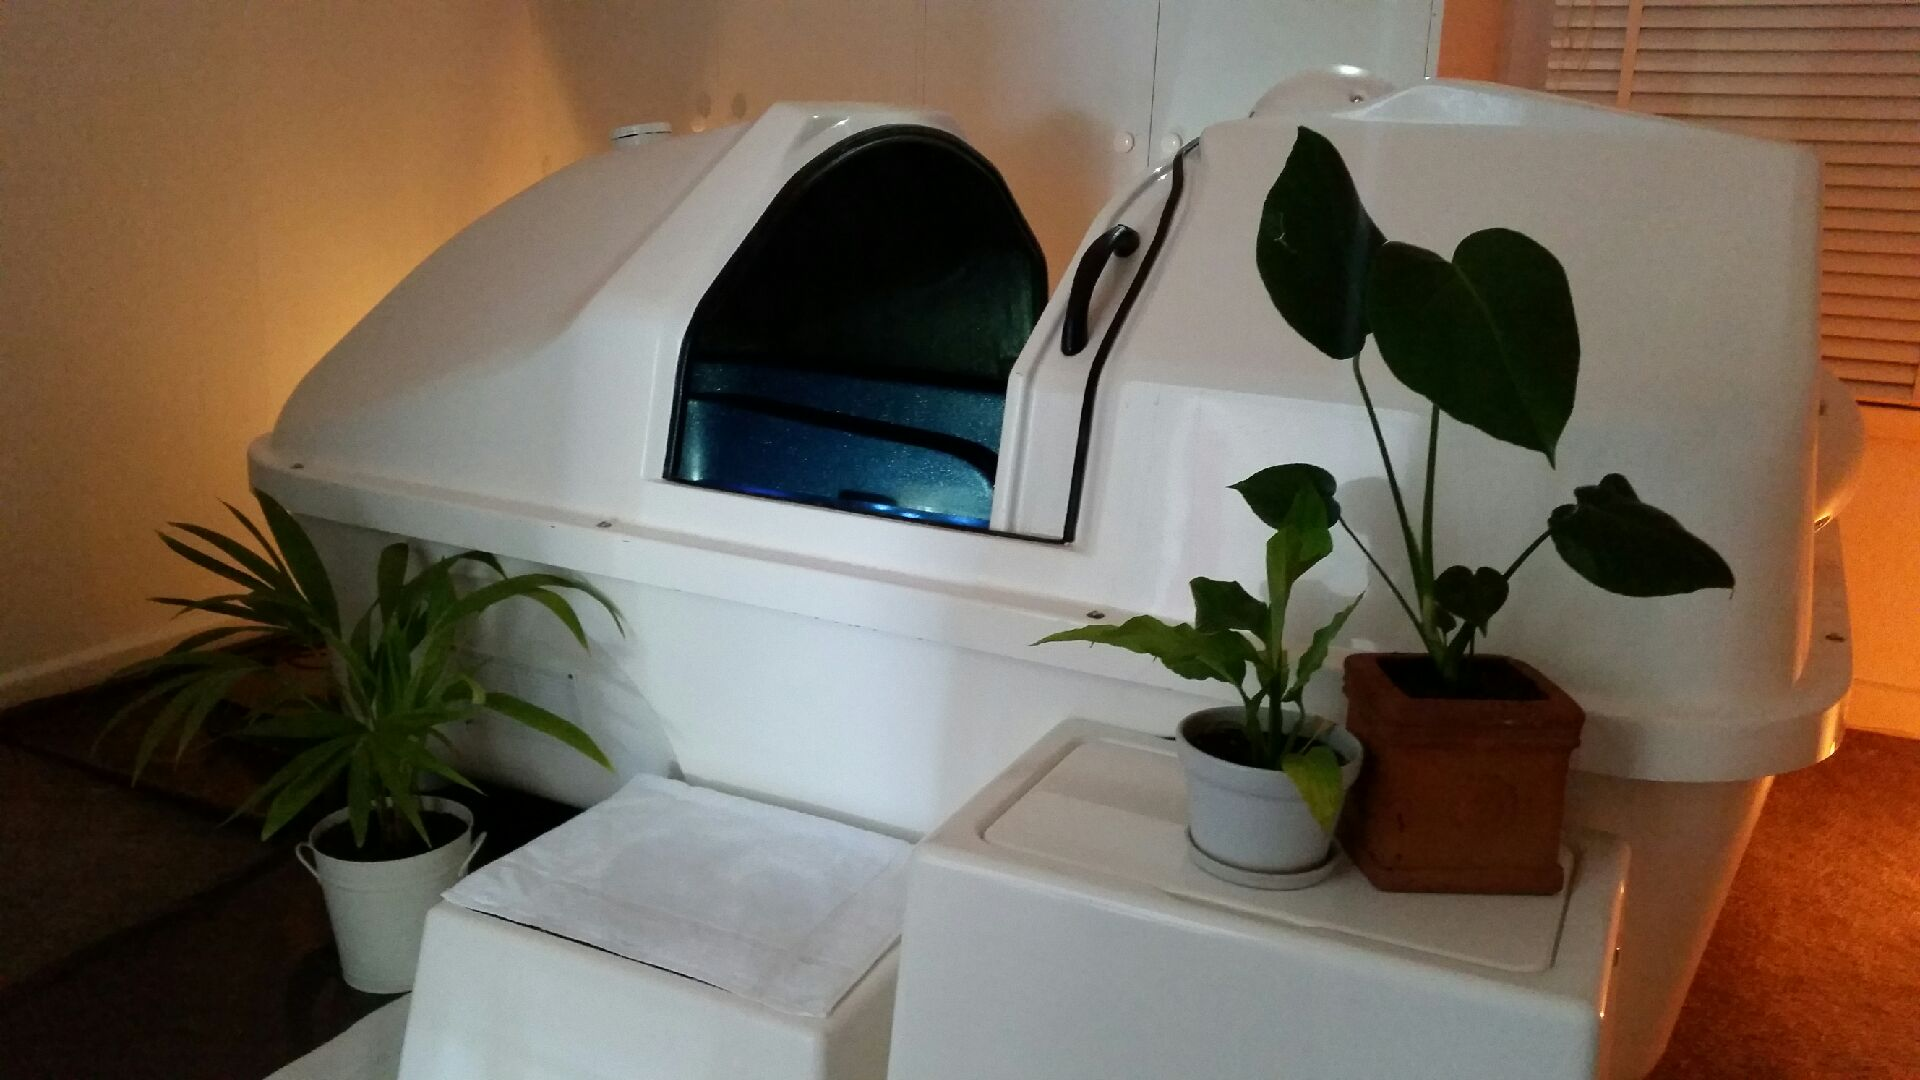 Salt Lamps Ballarat : Where to Float in Australia - Isolation Tank Locations